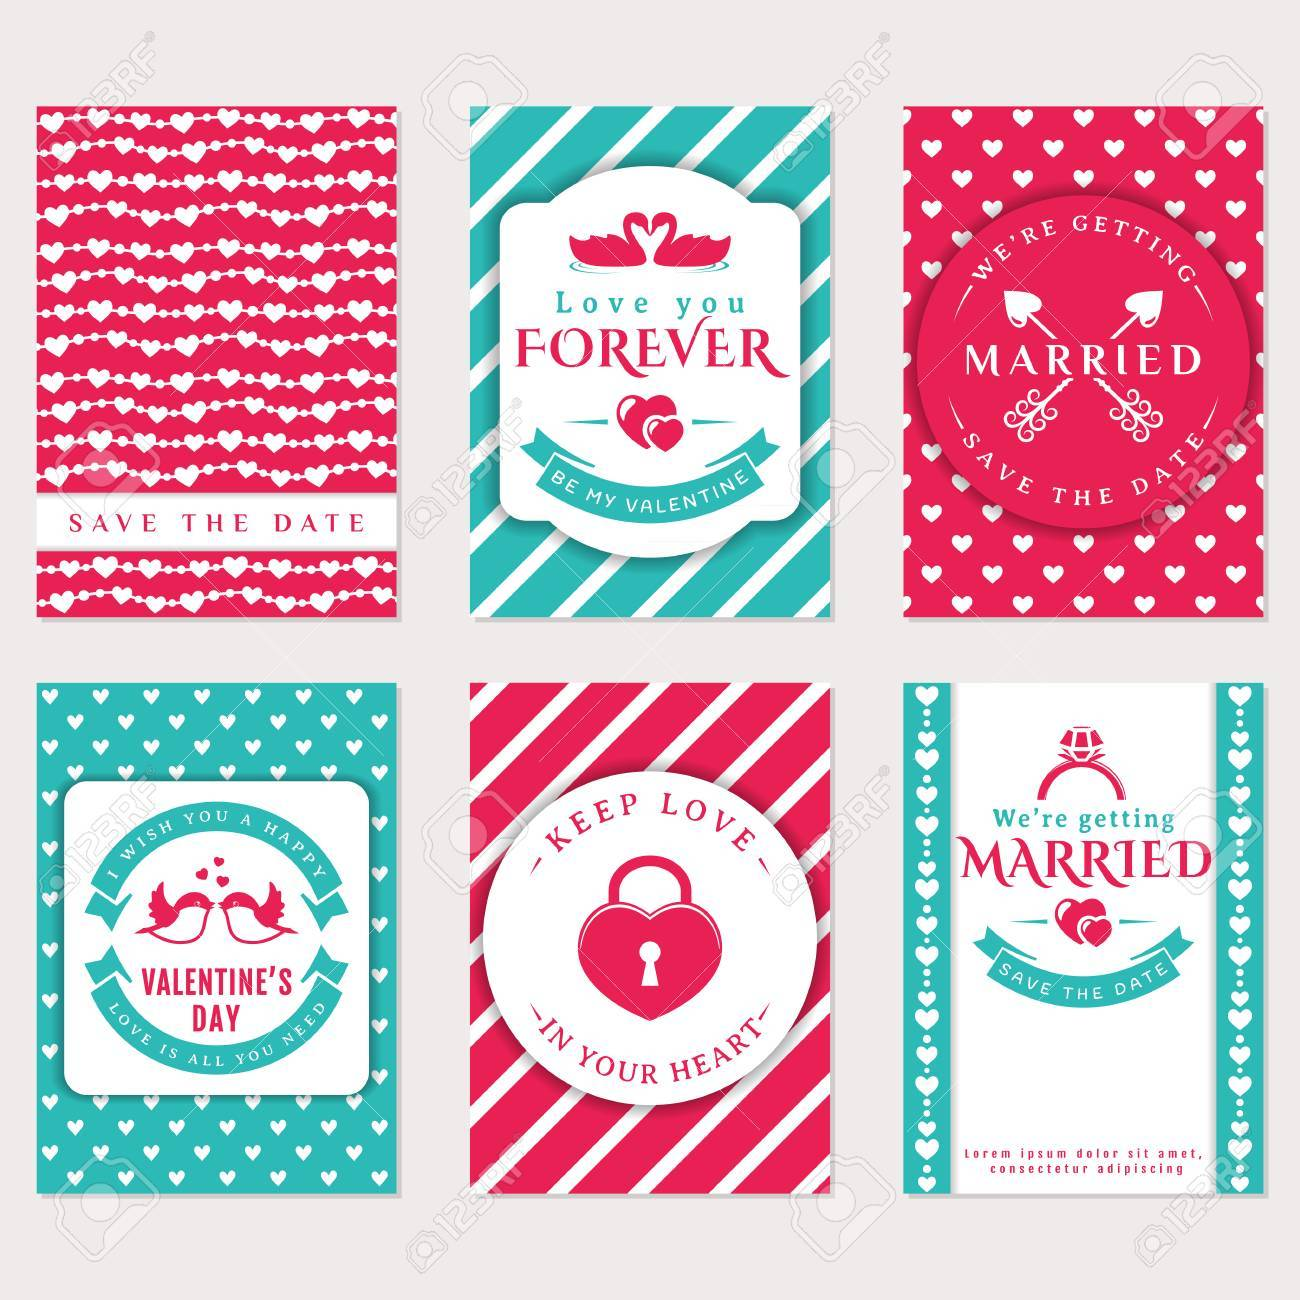 Collection of cute vector banners romantic flyers valentines collection of cute vector banners romantic flyers valentines day greeting card wedding invitations m4hsunfo